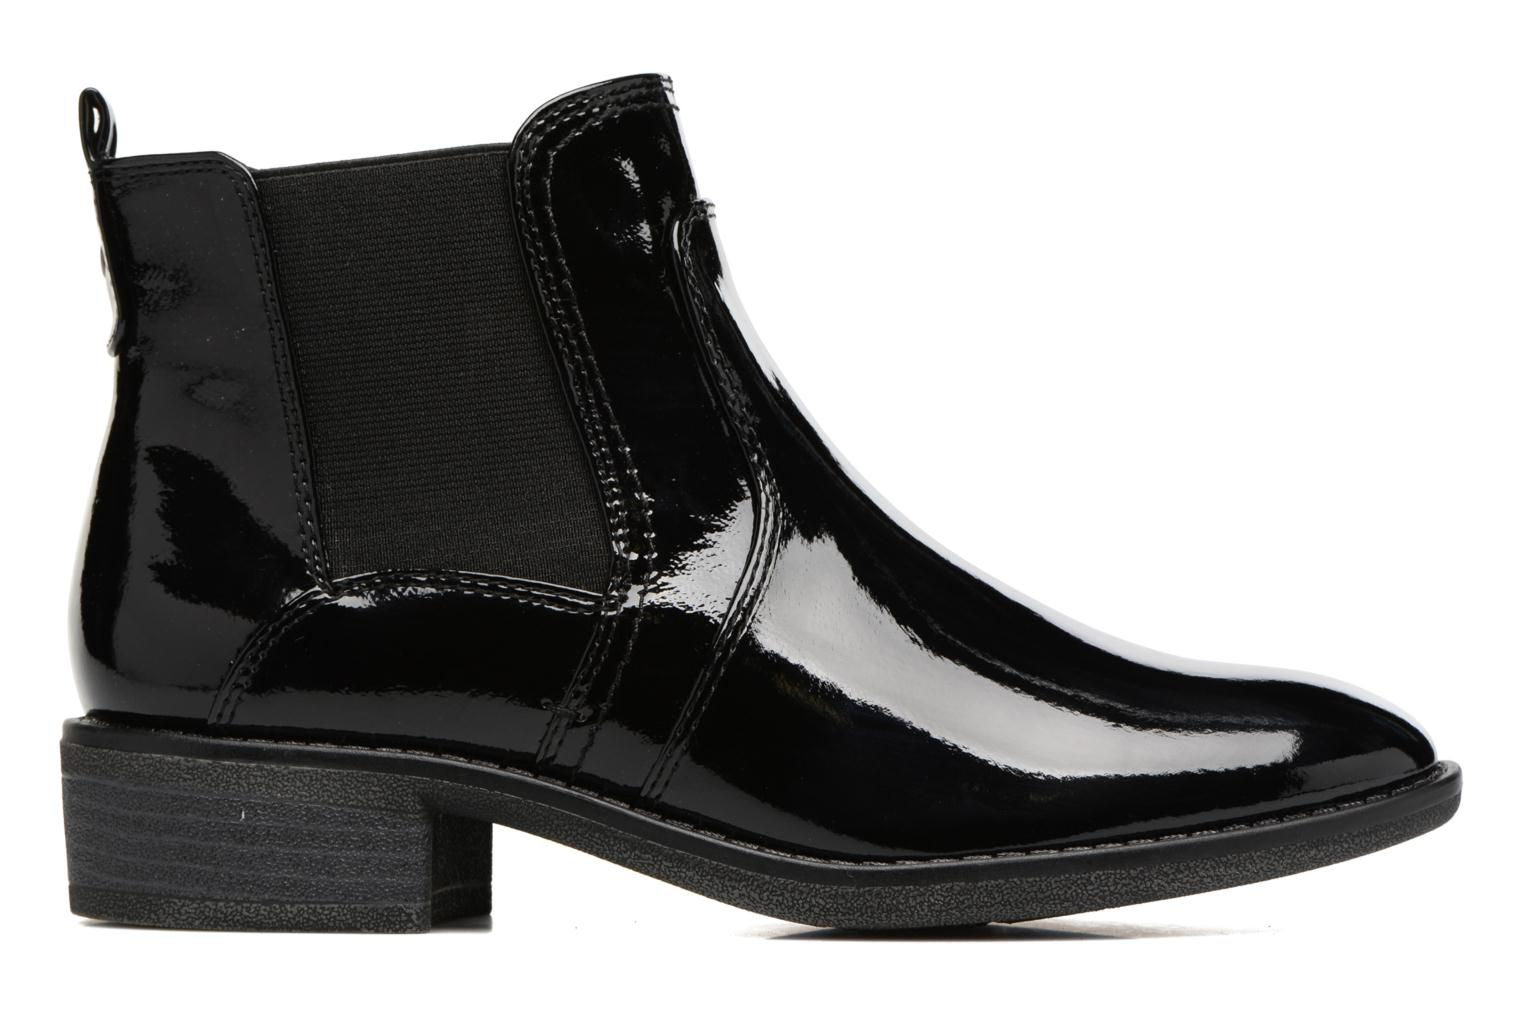 Patent Jana shoes Zali Jana Black Black shoes Patent Zali Jana pw4dn7